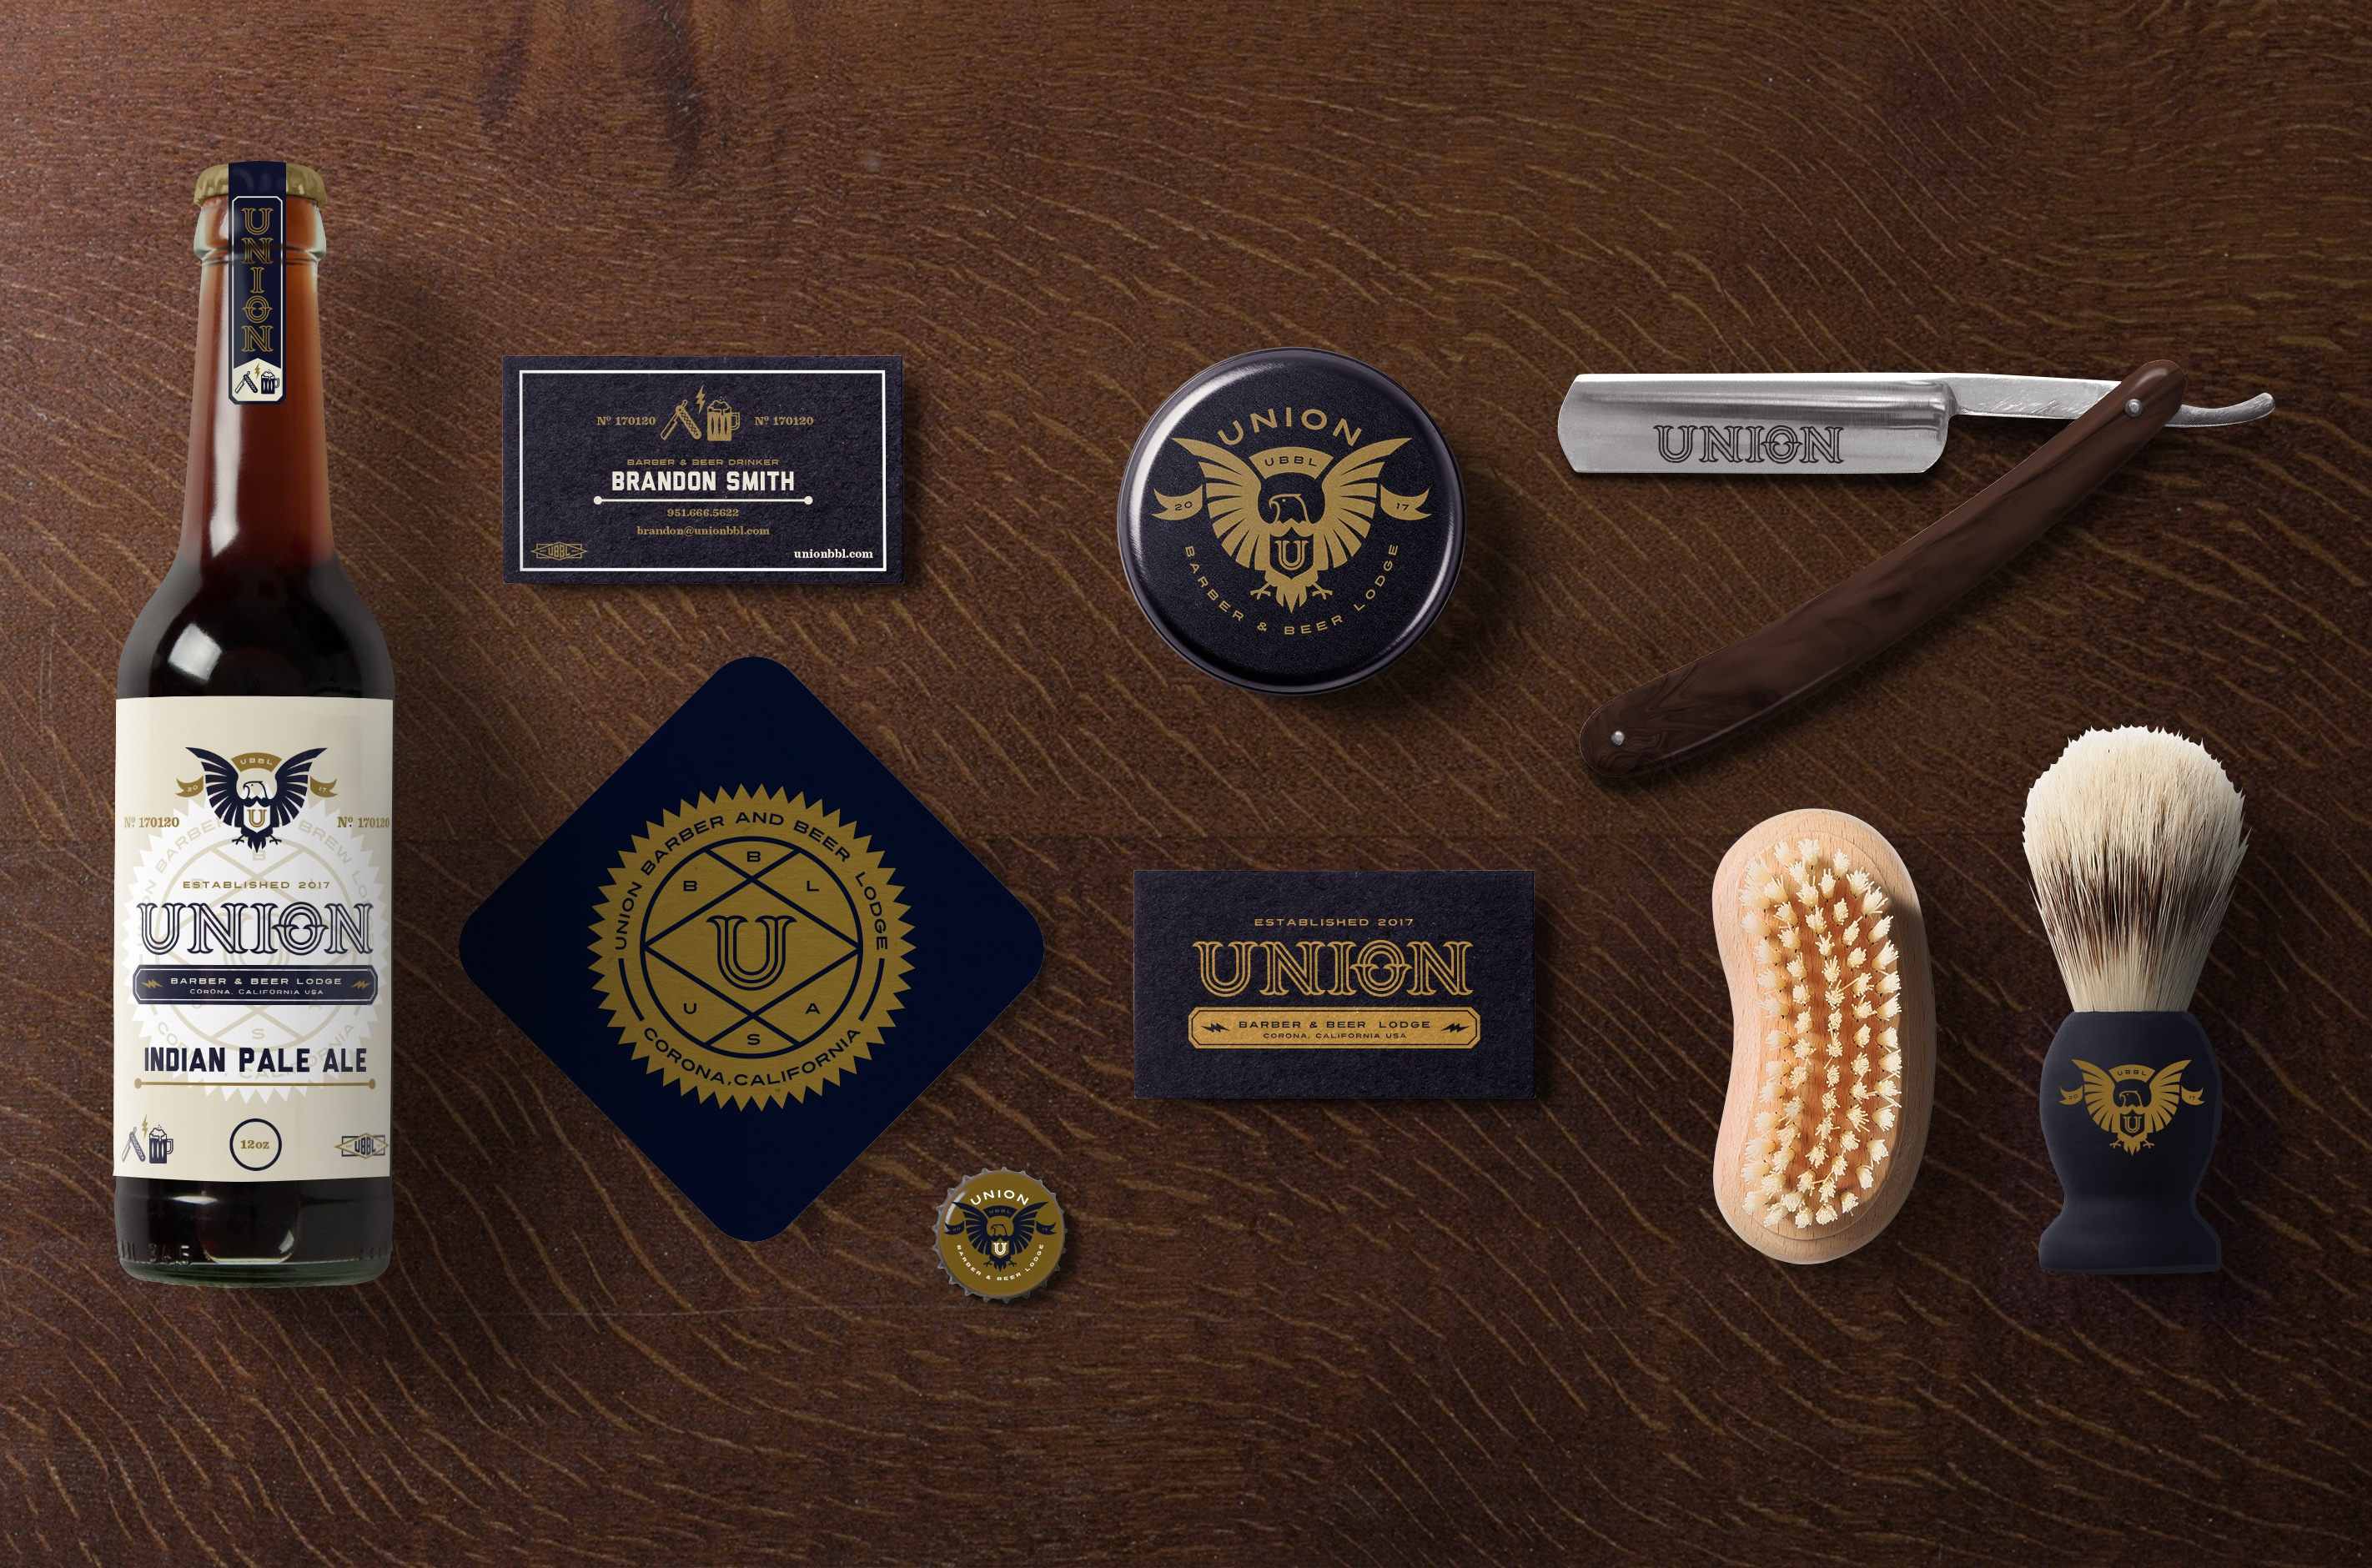 Bryce Reyes / Projects / Union Barber and Beer Lodge | Dribbble